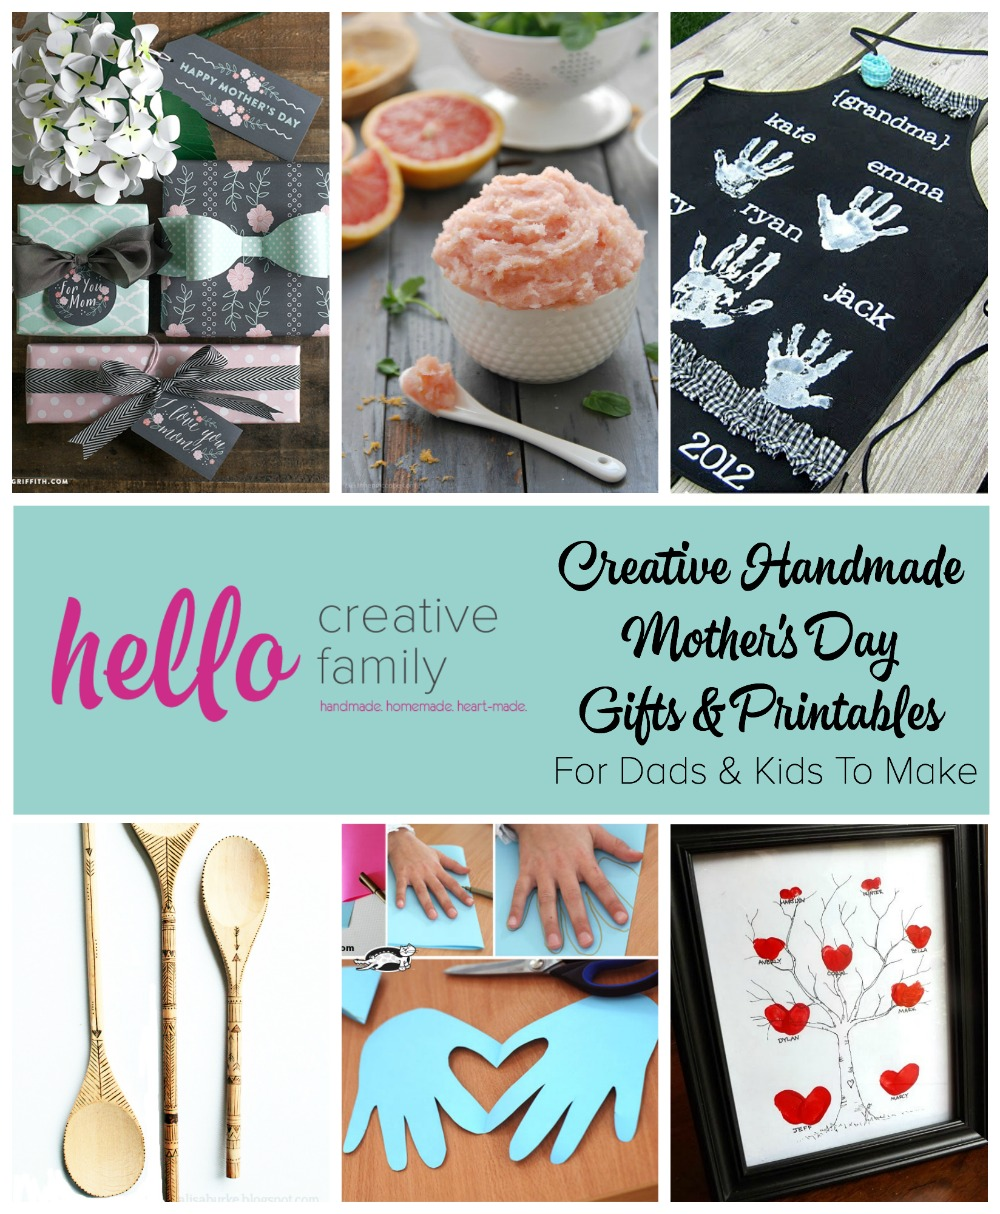 Creative Handmade Mothers Day Gifts And Printables For Dads And Kids